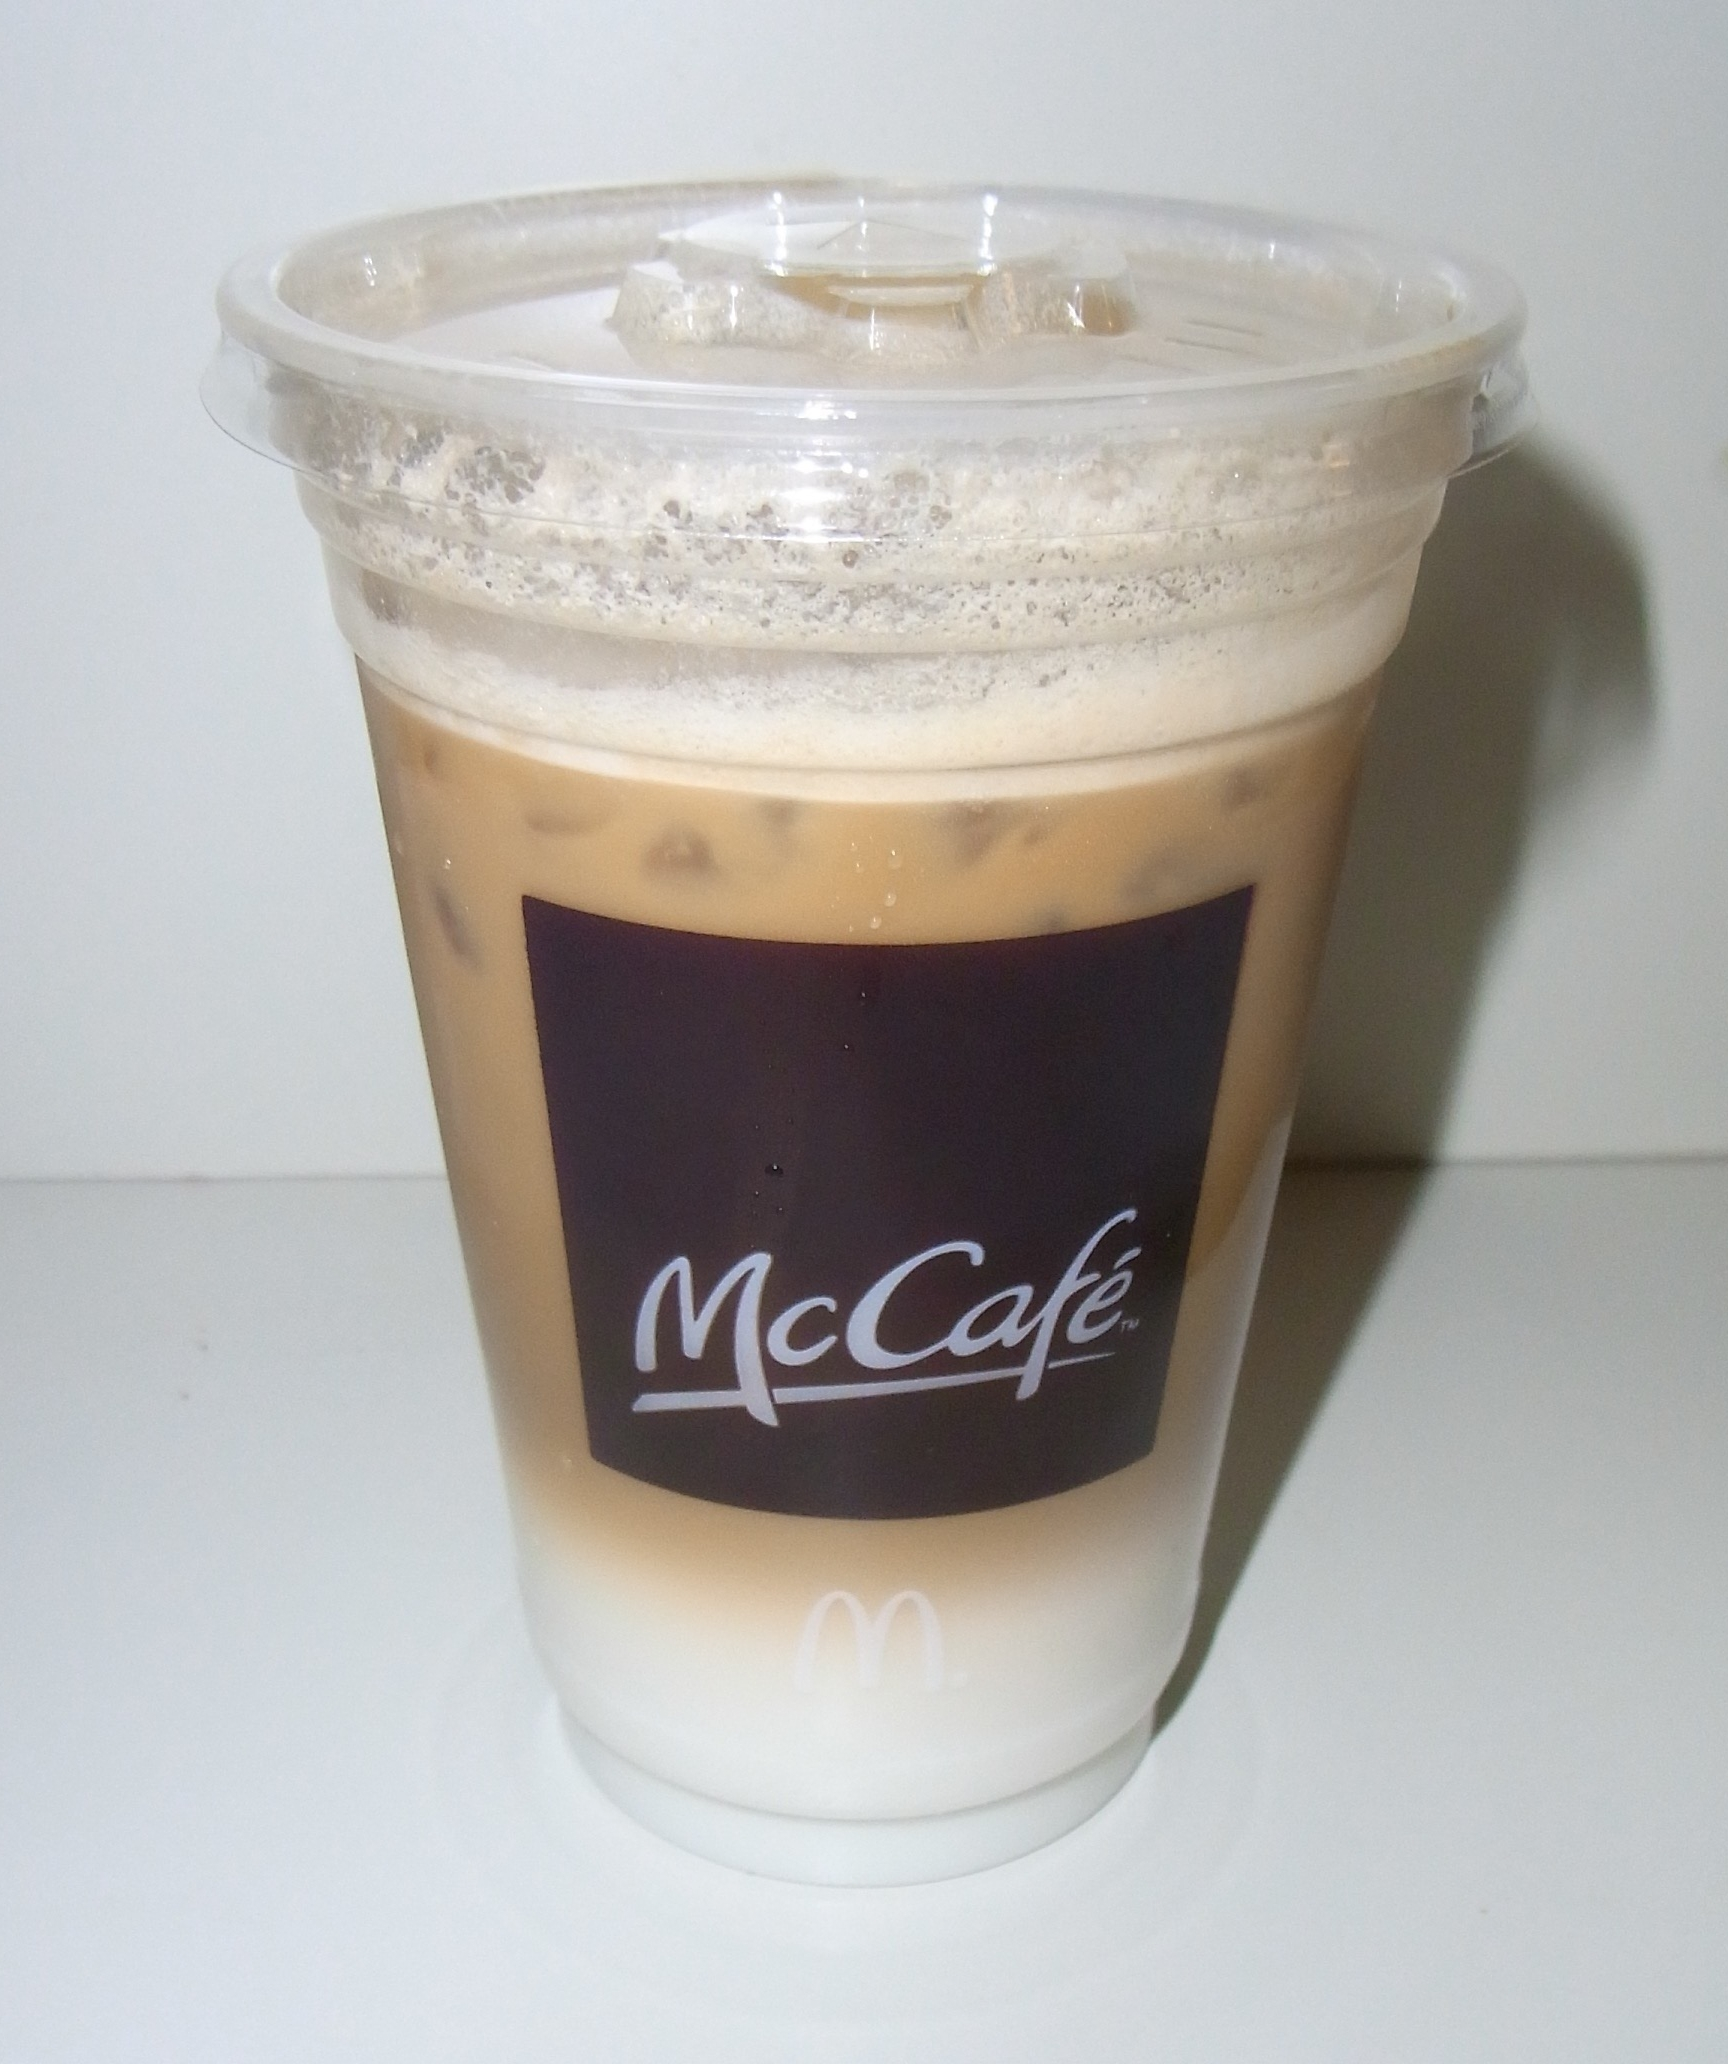 Caffe Latte File Mc Ice Caffe Latte Jp Jpg Wikimedia Commons